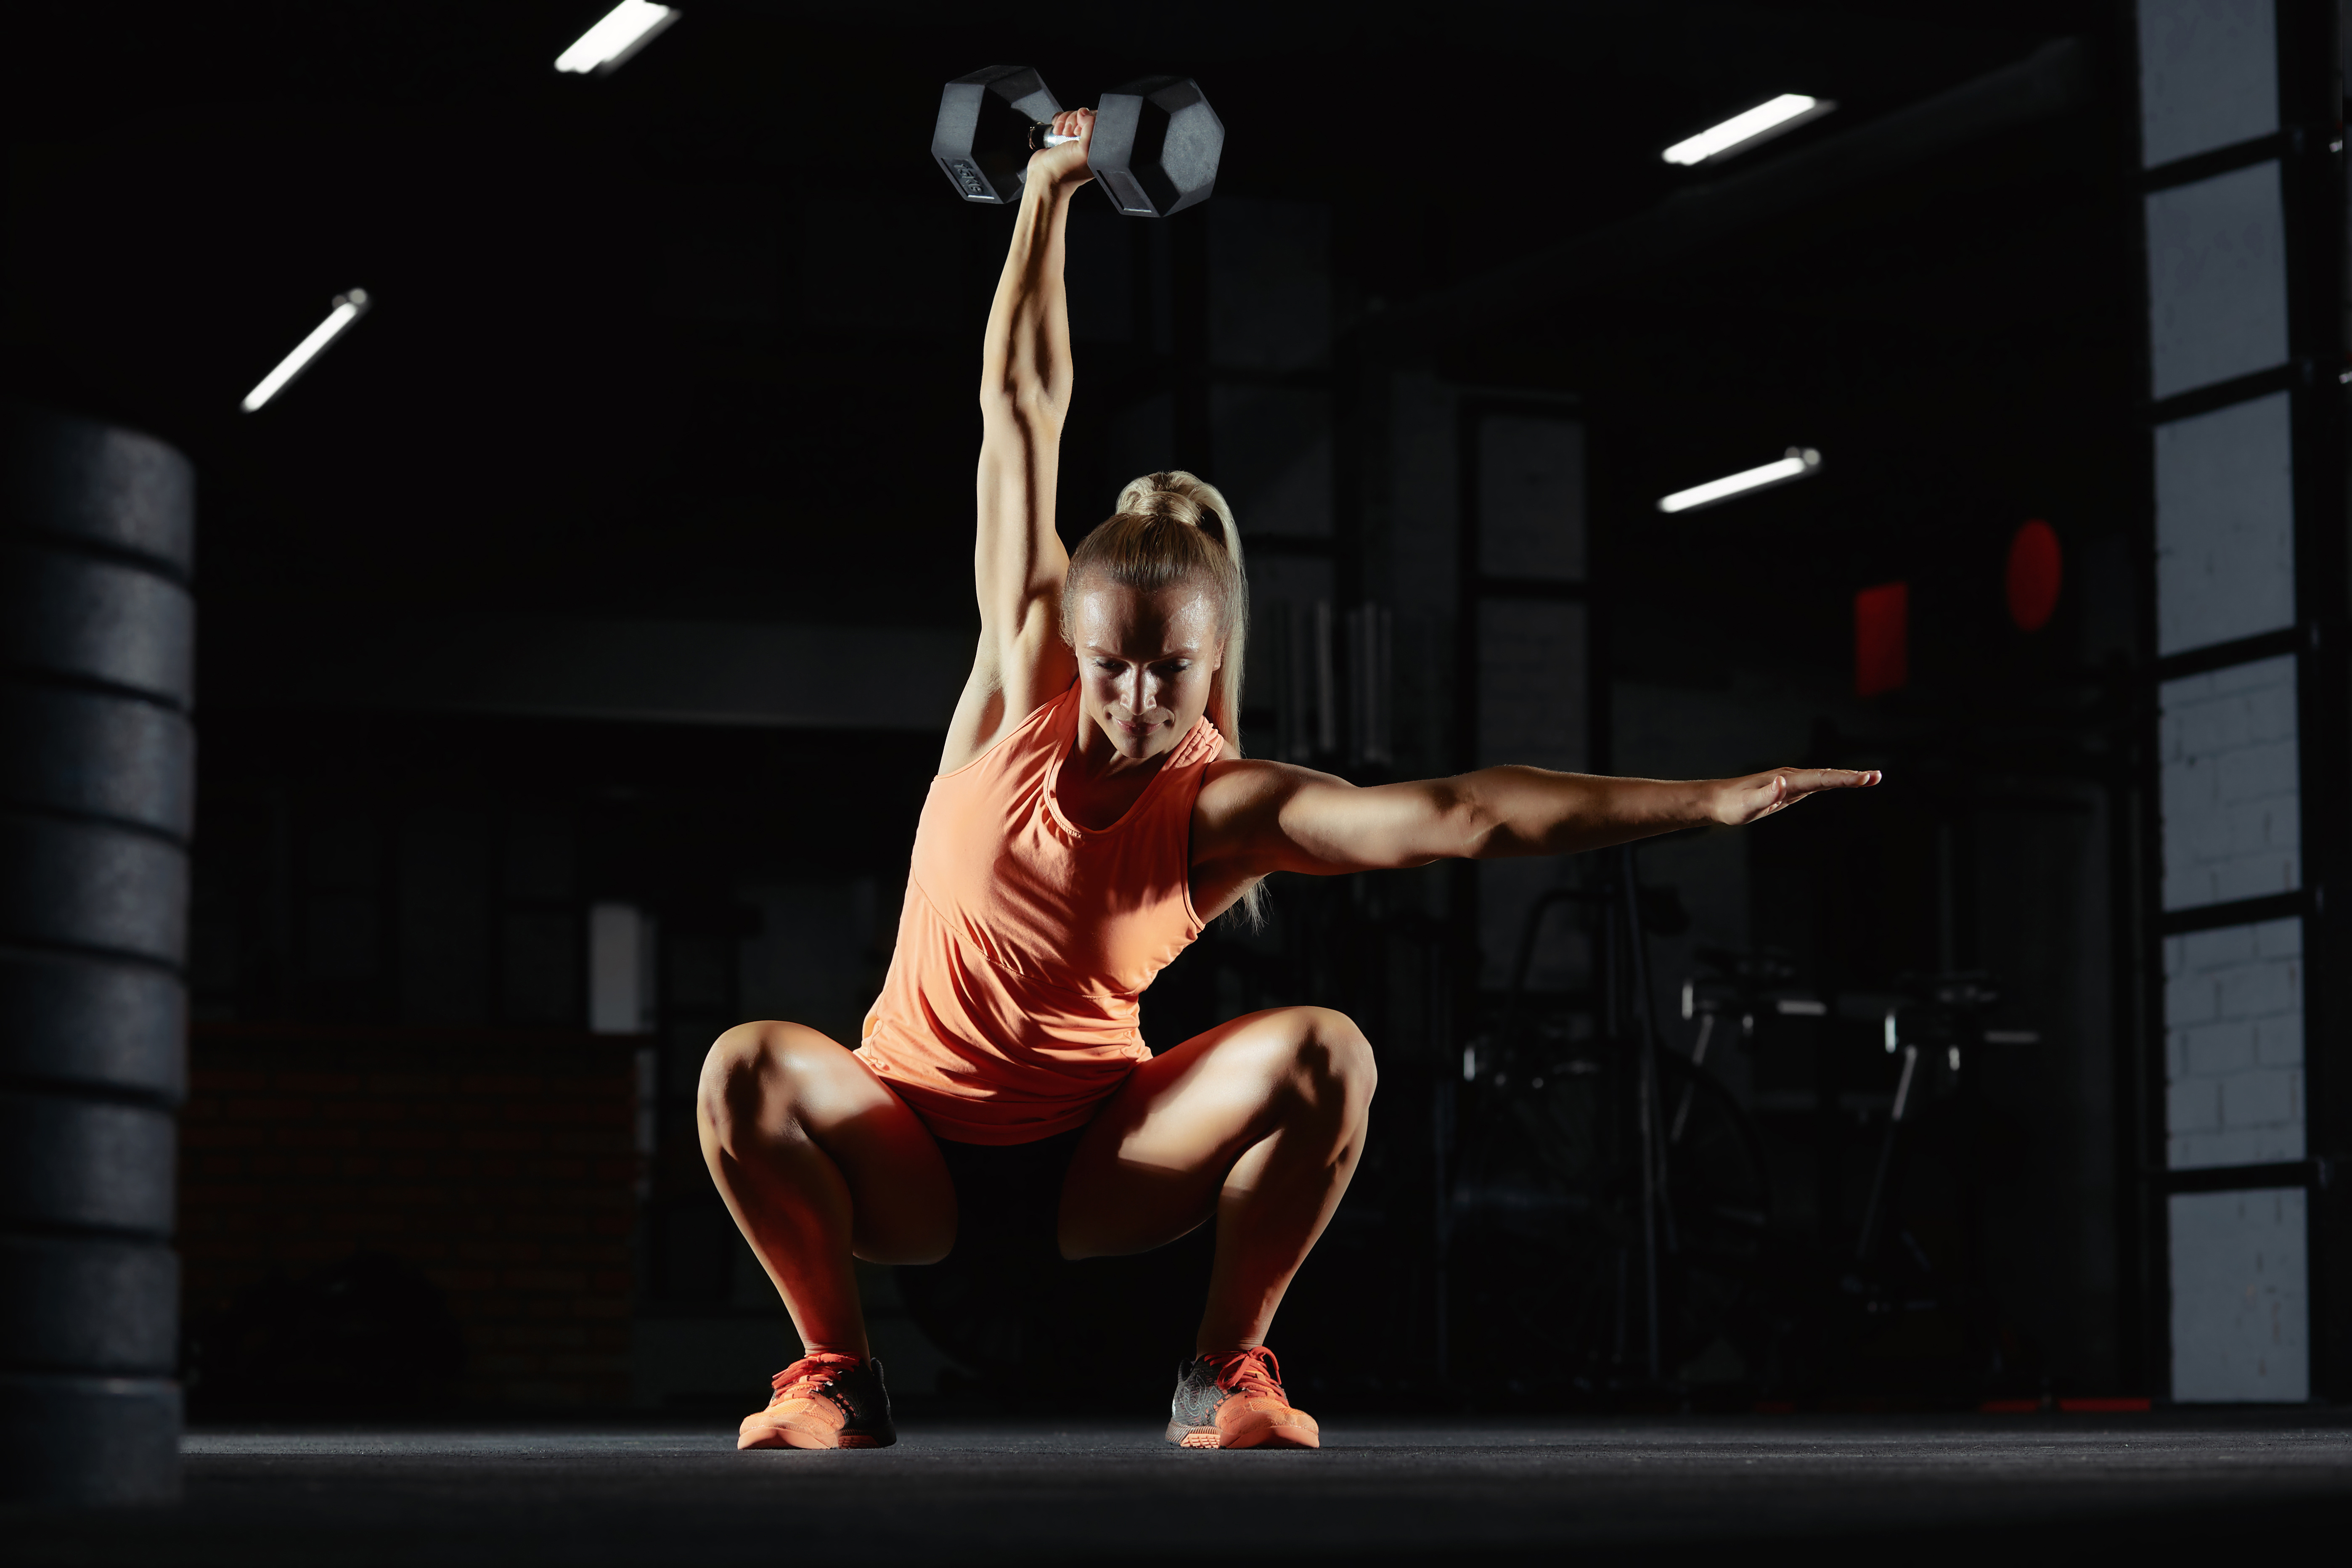 Beautiful sportswoman exercising at the gym doing overhead kettlebell squats copyspace motivation beauty confidence fitness athletic body feminine powerful muscles weight gain concept